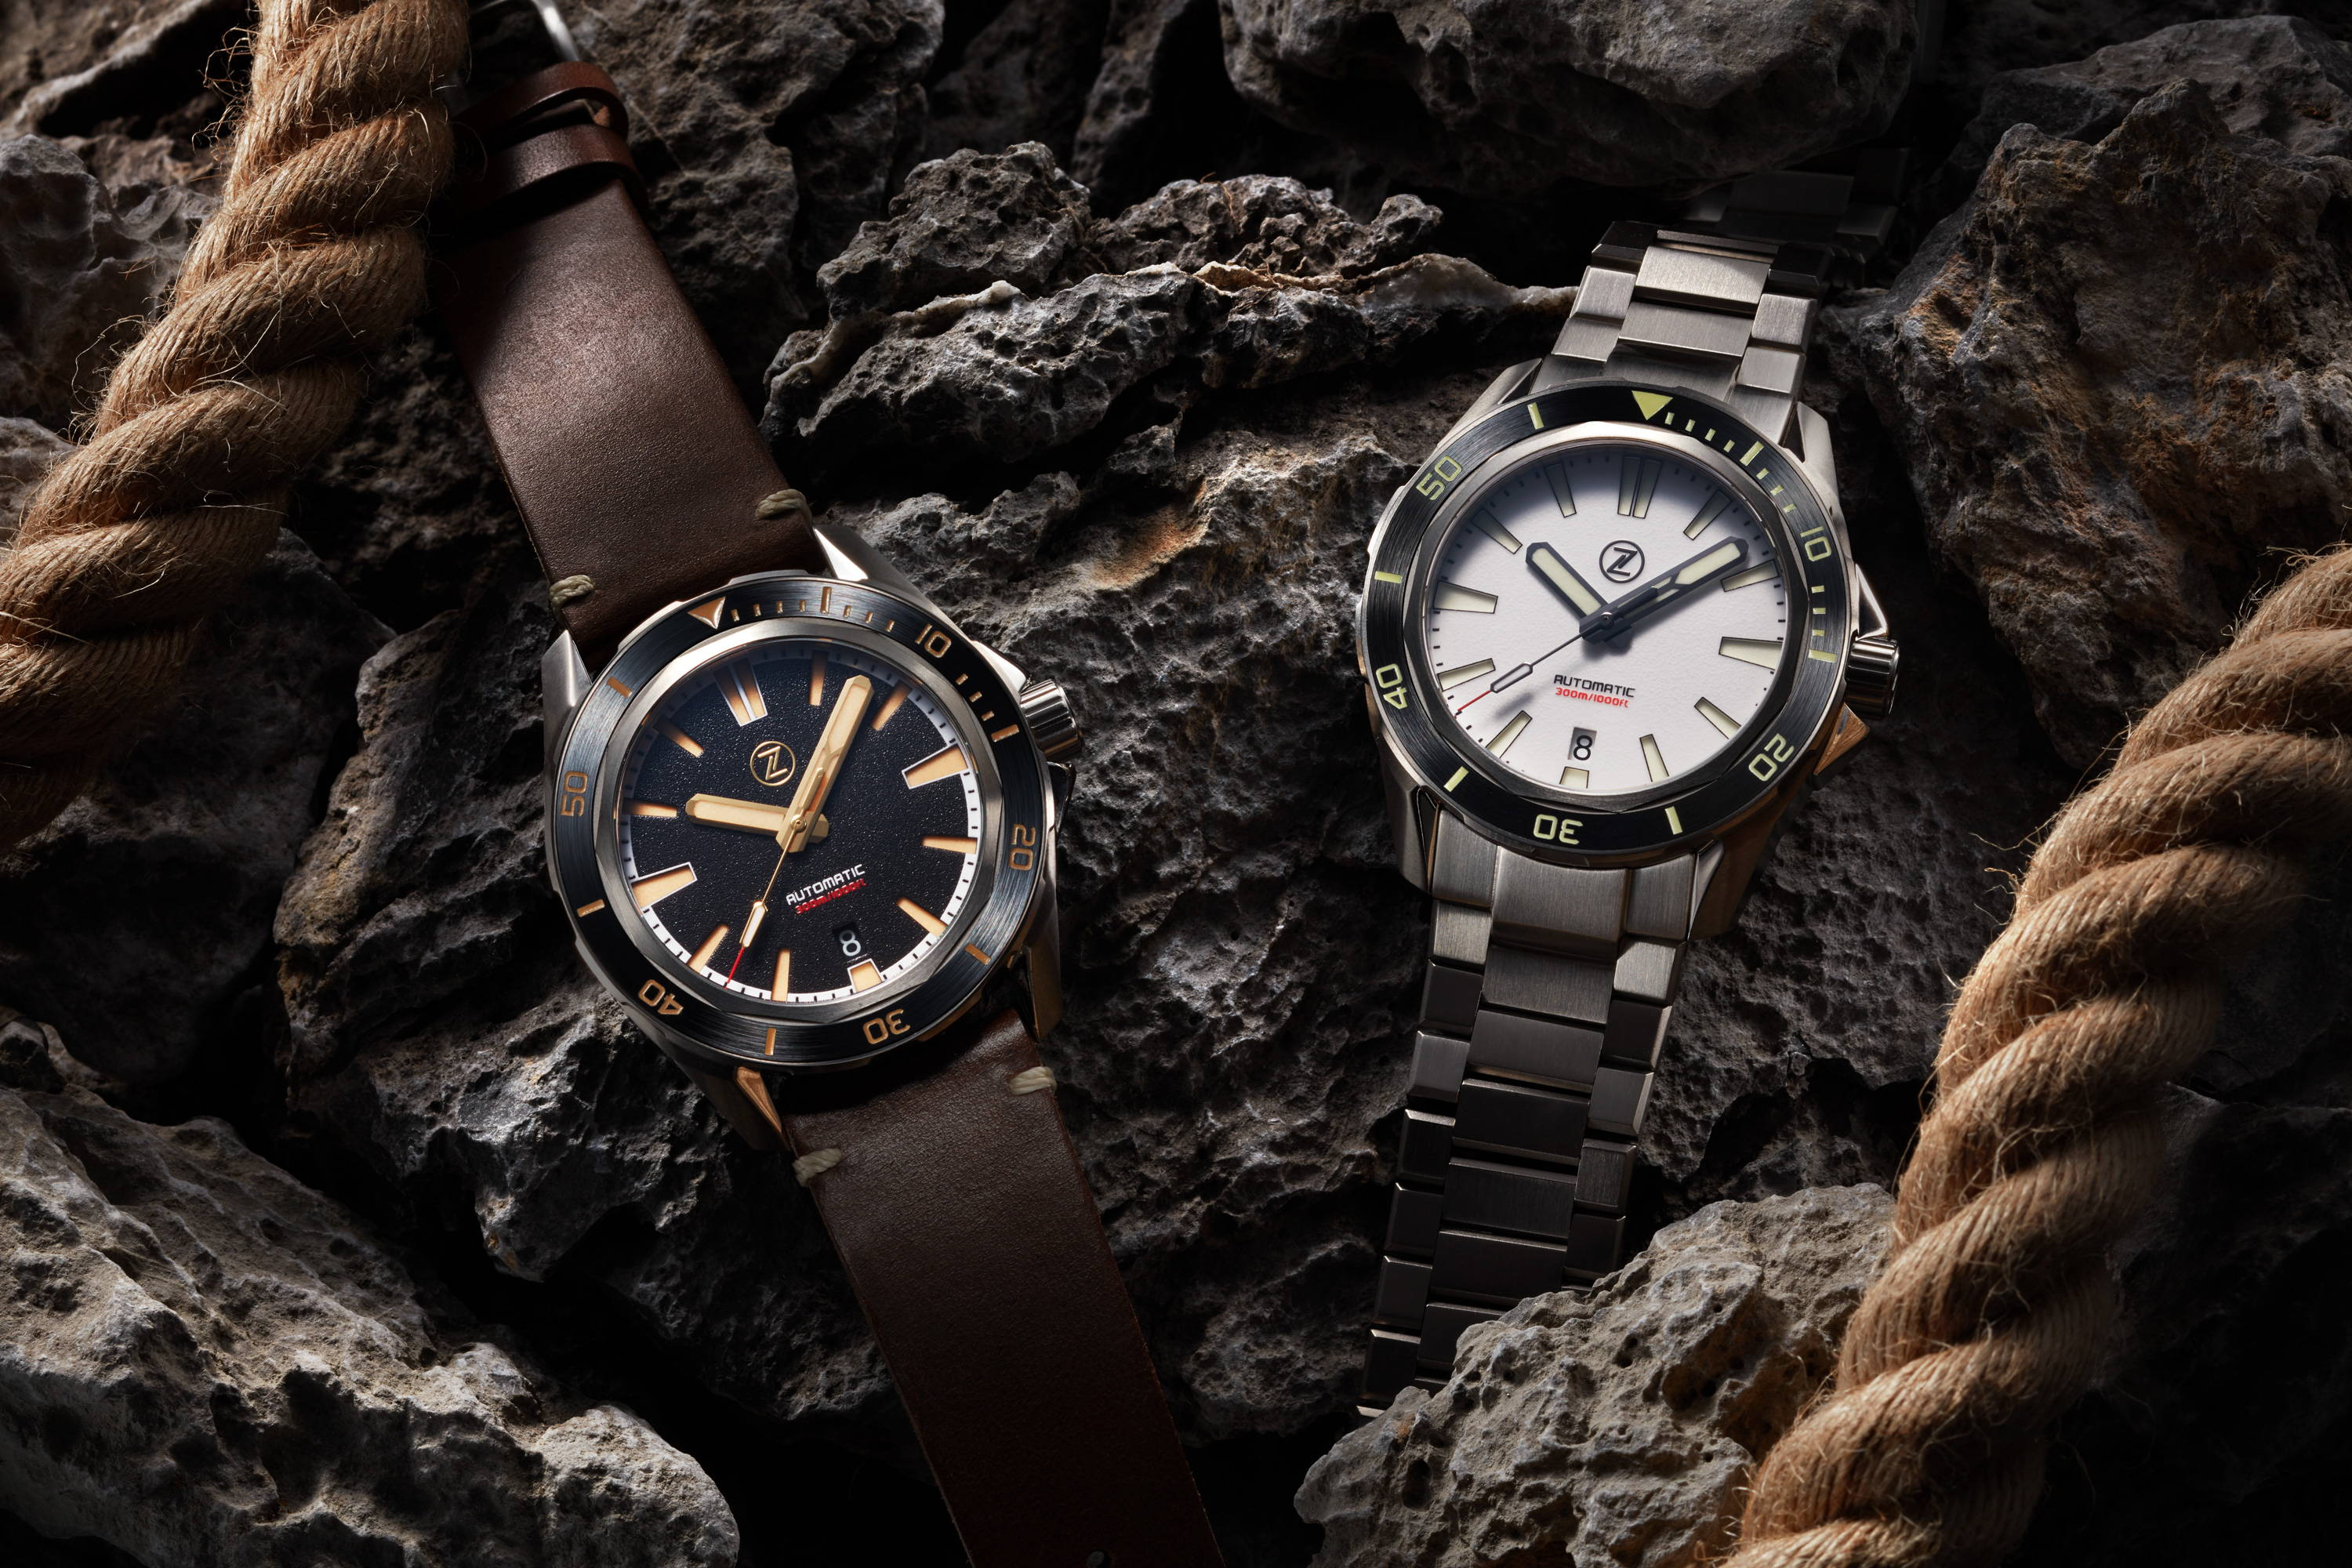 Local microbrands and watches that deserve our attention